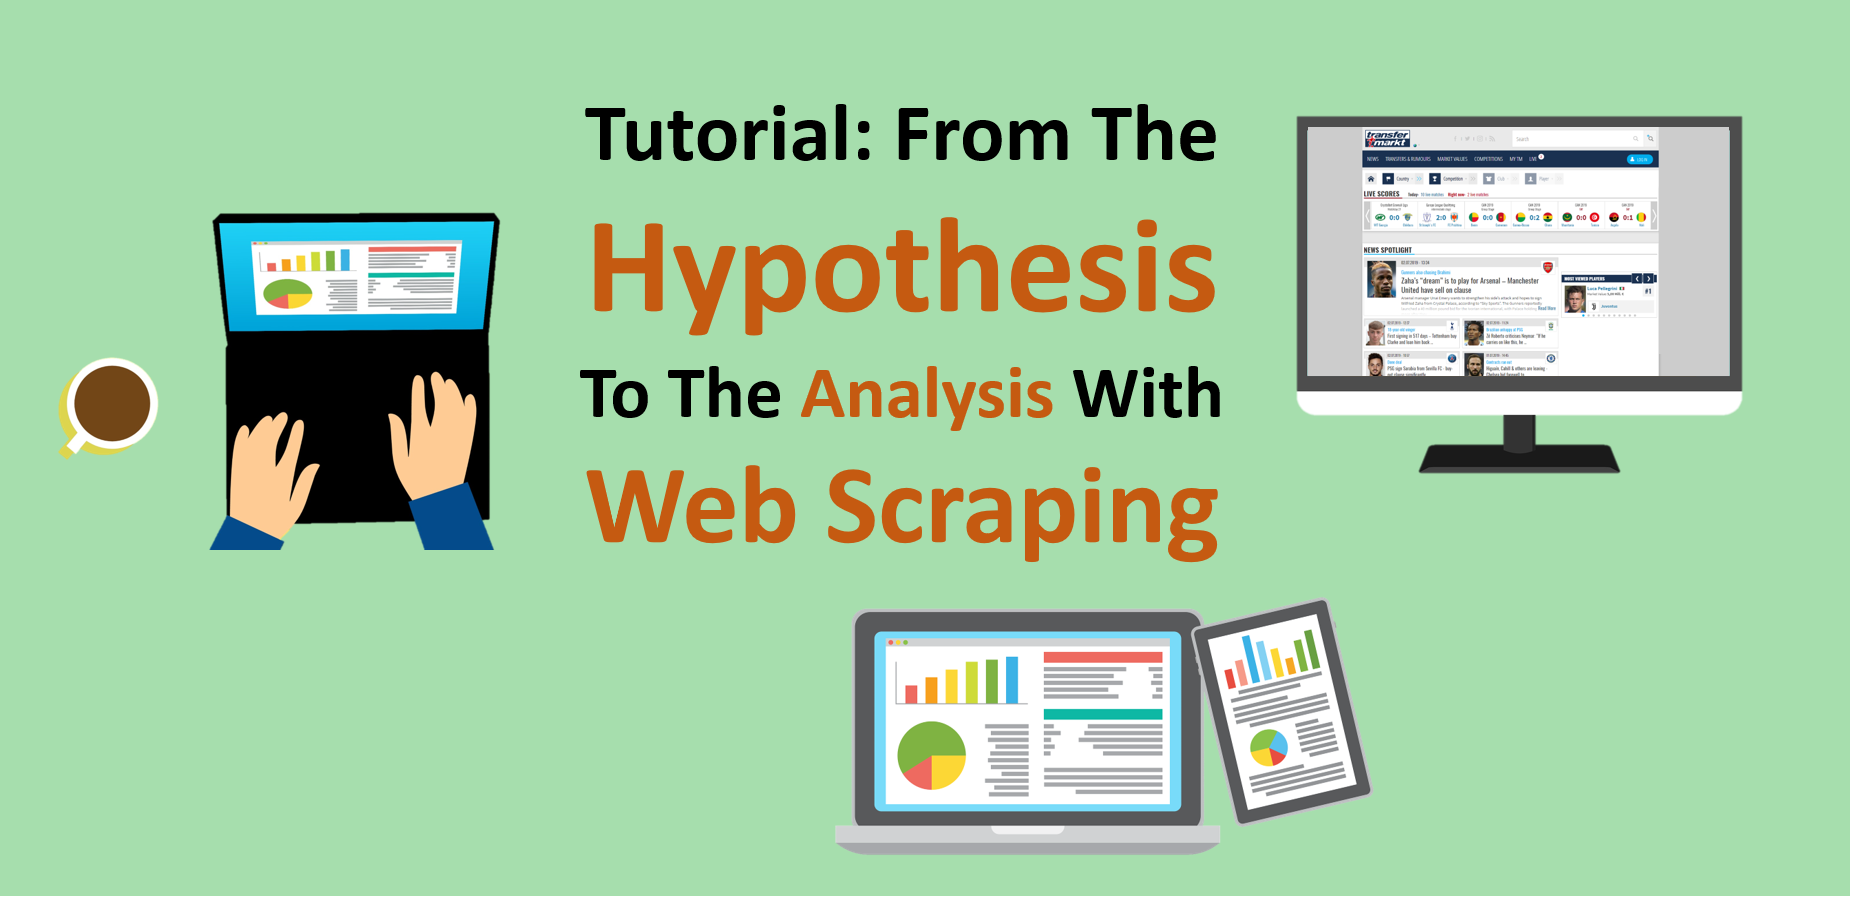 Tutorial: From The Hypothesis To The Analysis With Web Scraping